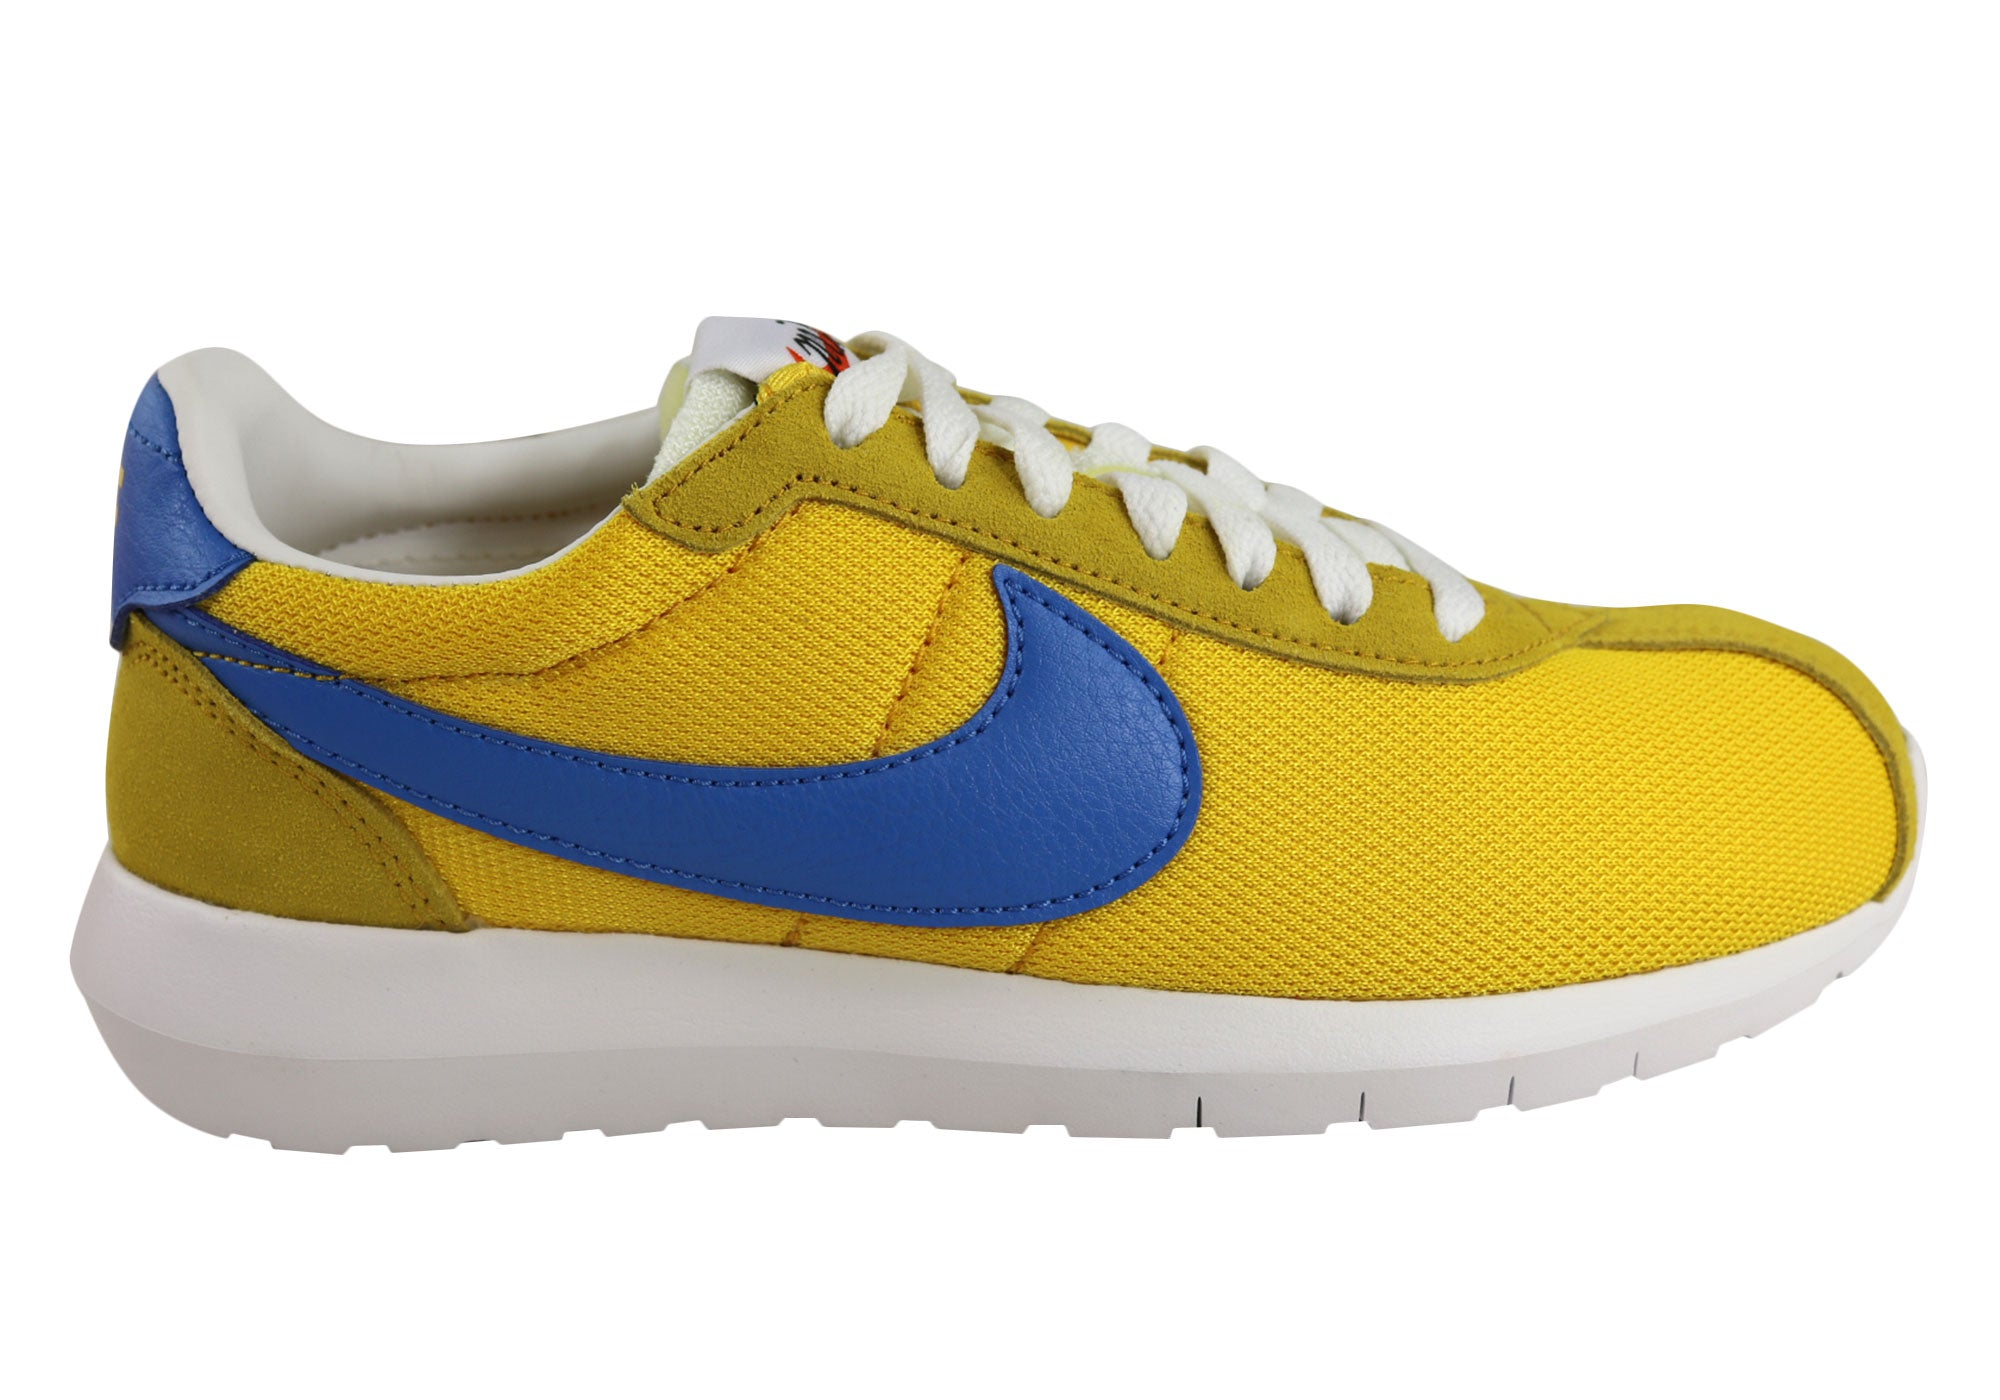 official photos 981f2 cbc26 Home Nike W Roshe LD-1000 QS Womens Shoes. Yellow Blue ...